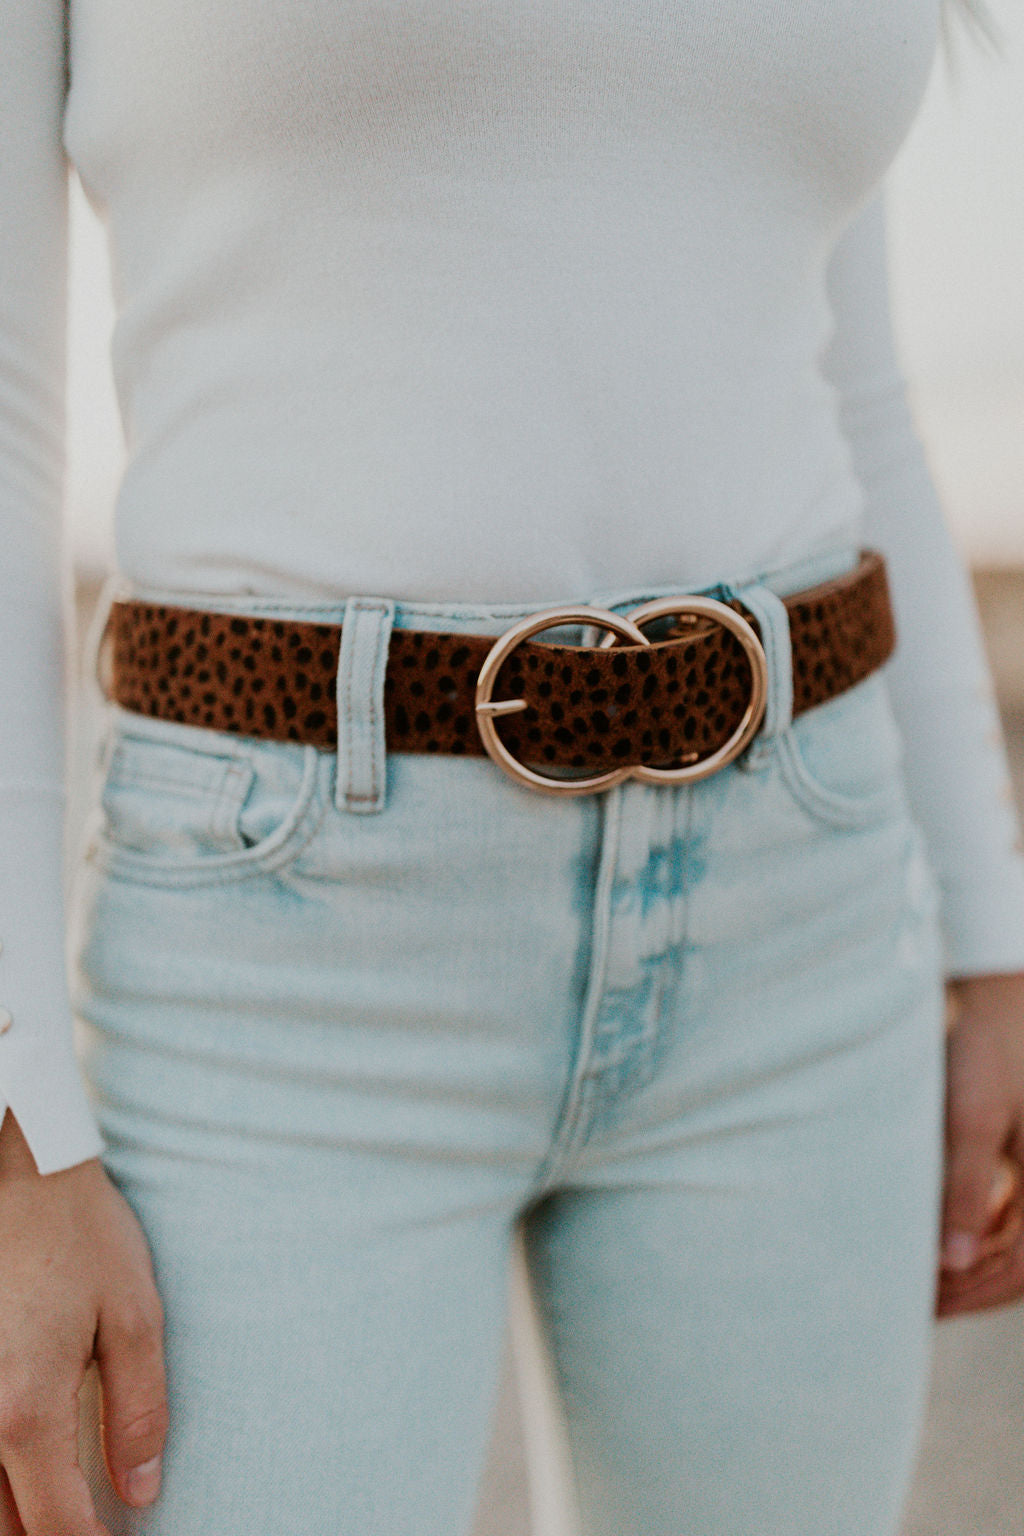 THE DOUBLE RING BELT IN CHEETAH